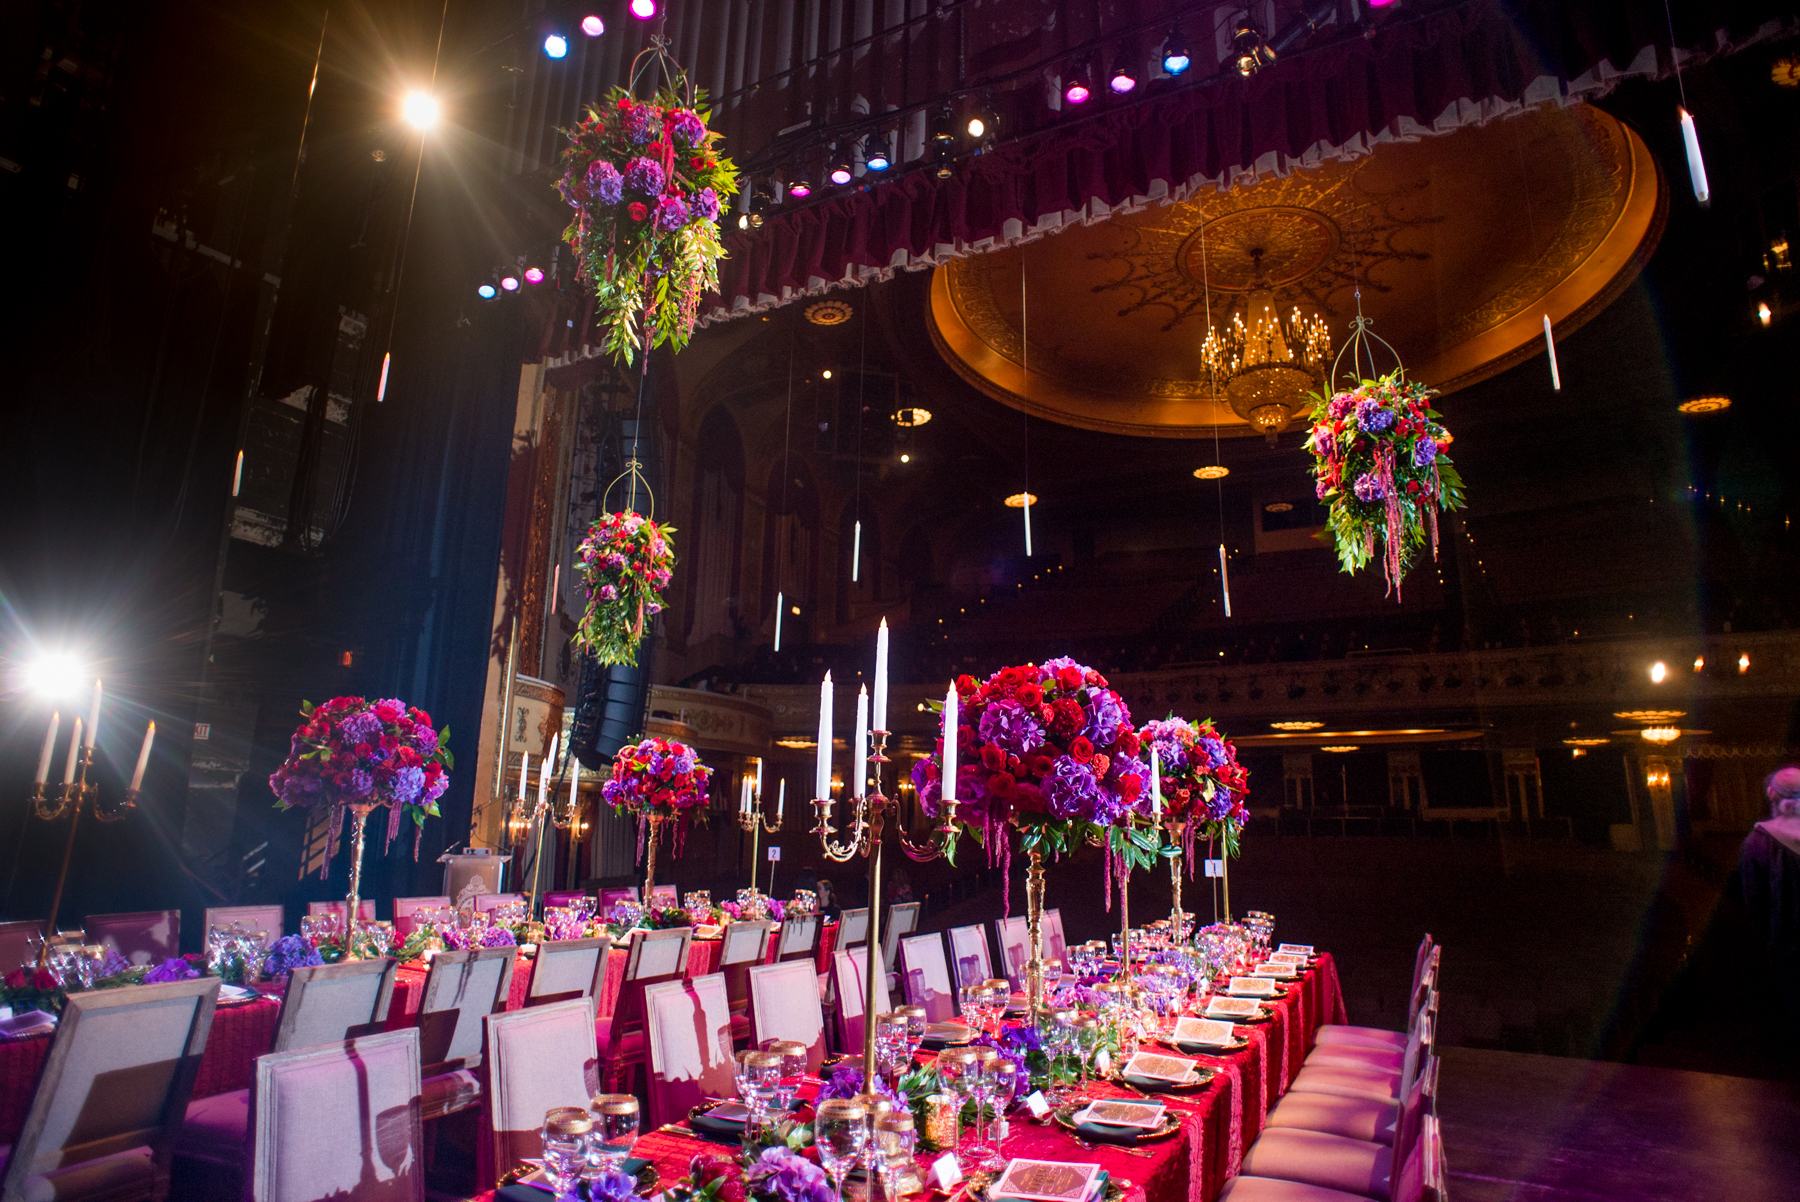 Gold candelabras, overflowing flowers on the table and hanging from above added so much drama to an already dramatic setting. It's not everyday an event is held on the  The Warner Theater stage. This venue is so opulent,unique and dramatic that we had to design the flowers on that level. The planner for this event chose such gorgeous linens, place settings and rentals and allowed us to go wild with the flowers. This will forever be one of my all time personal favorites. Photo above and below by  Erin Scott Photography  Catering by  Design Cuisine , rentals by  DC Rental